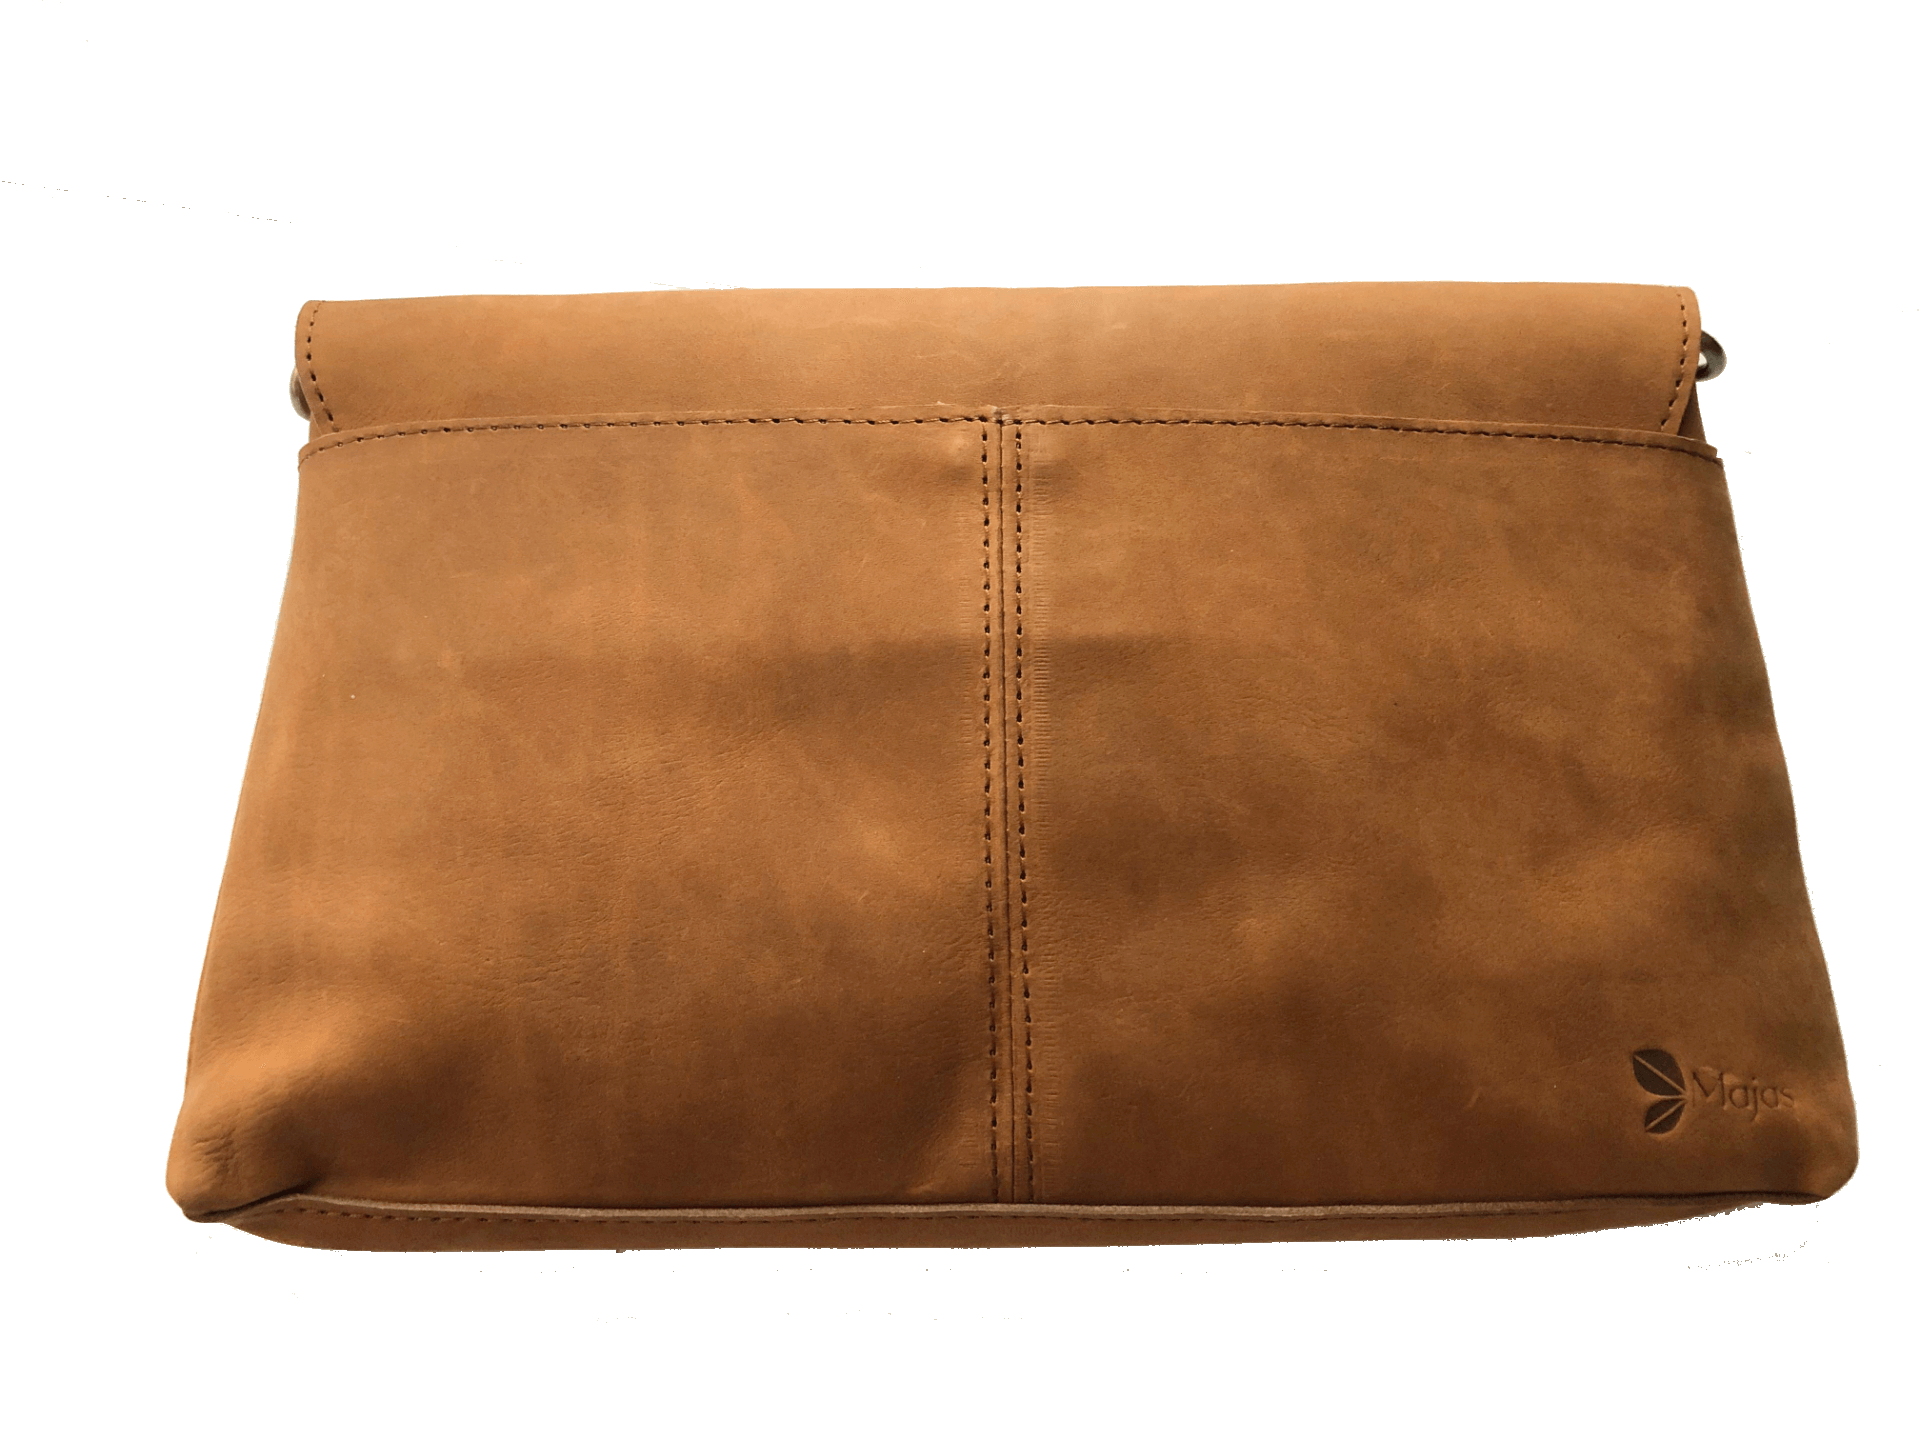 Madrid Tan Leather Envelope Pouch with Strap back side